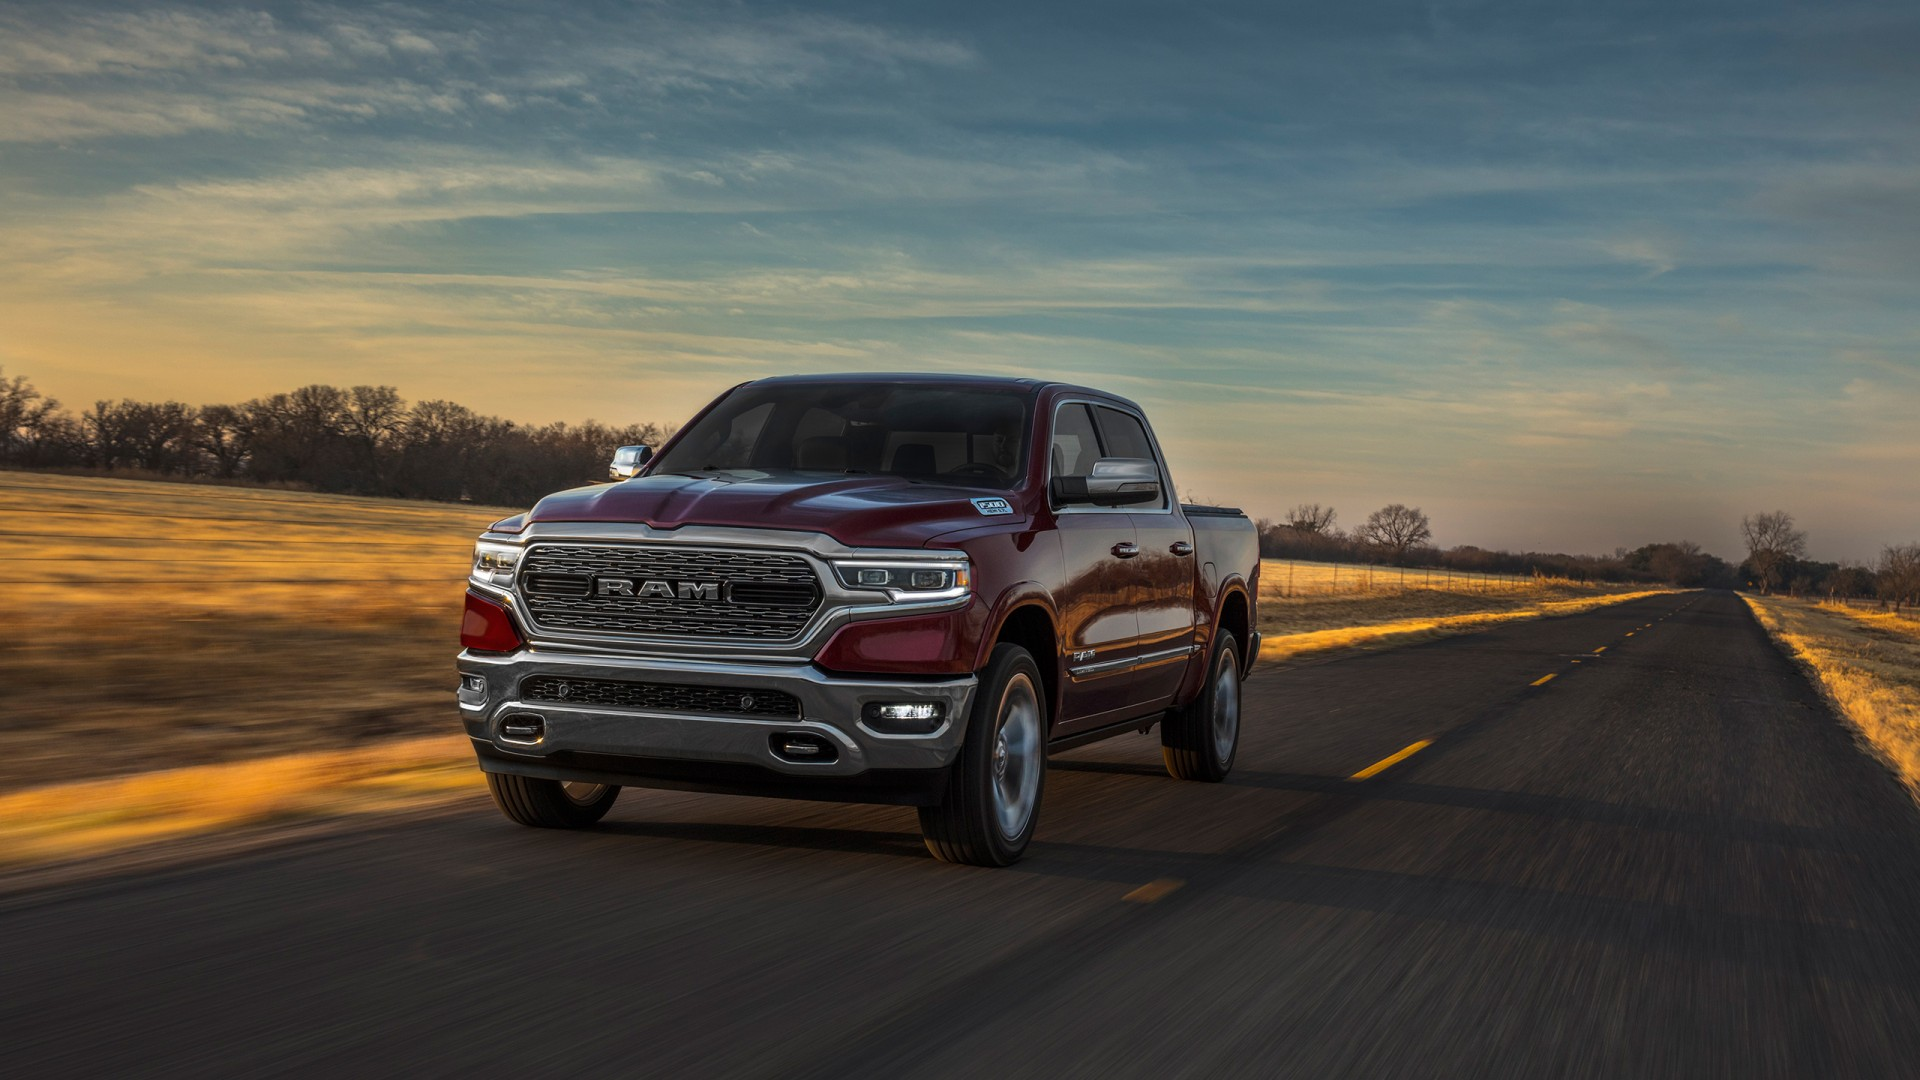 2019 Ram 1500 Limited Crew Cab Wallpaper | HD Car ...